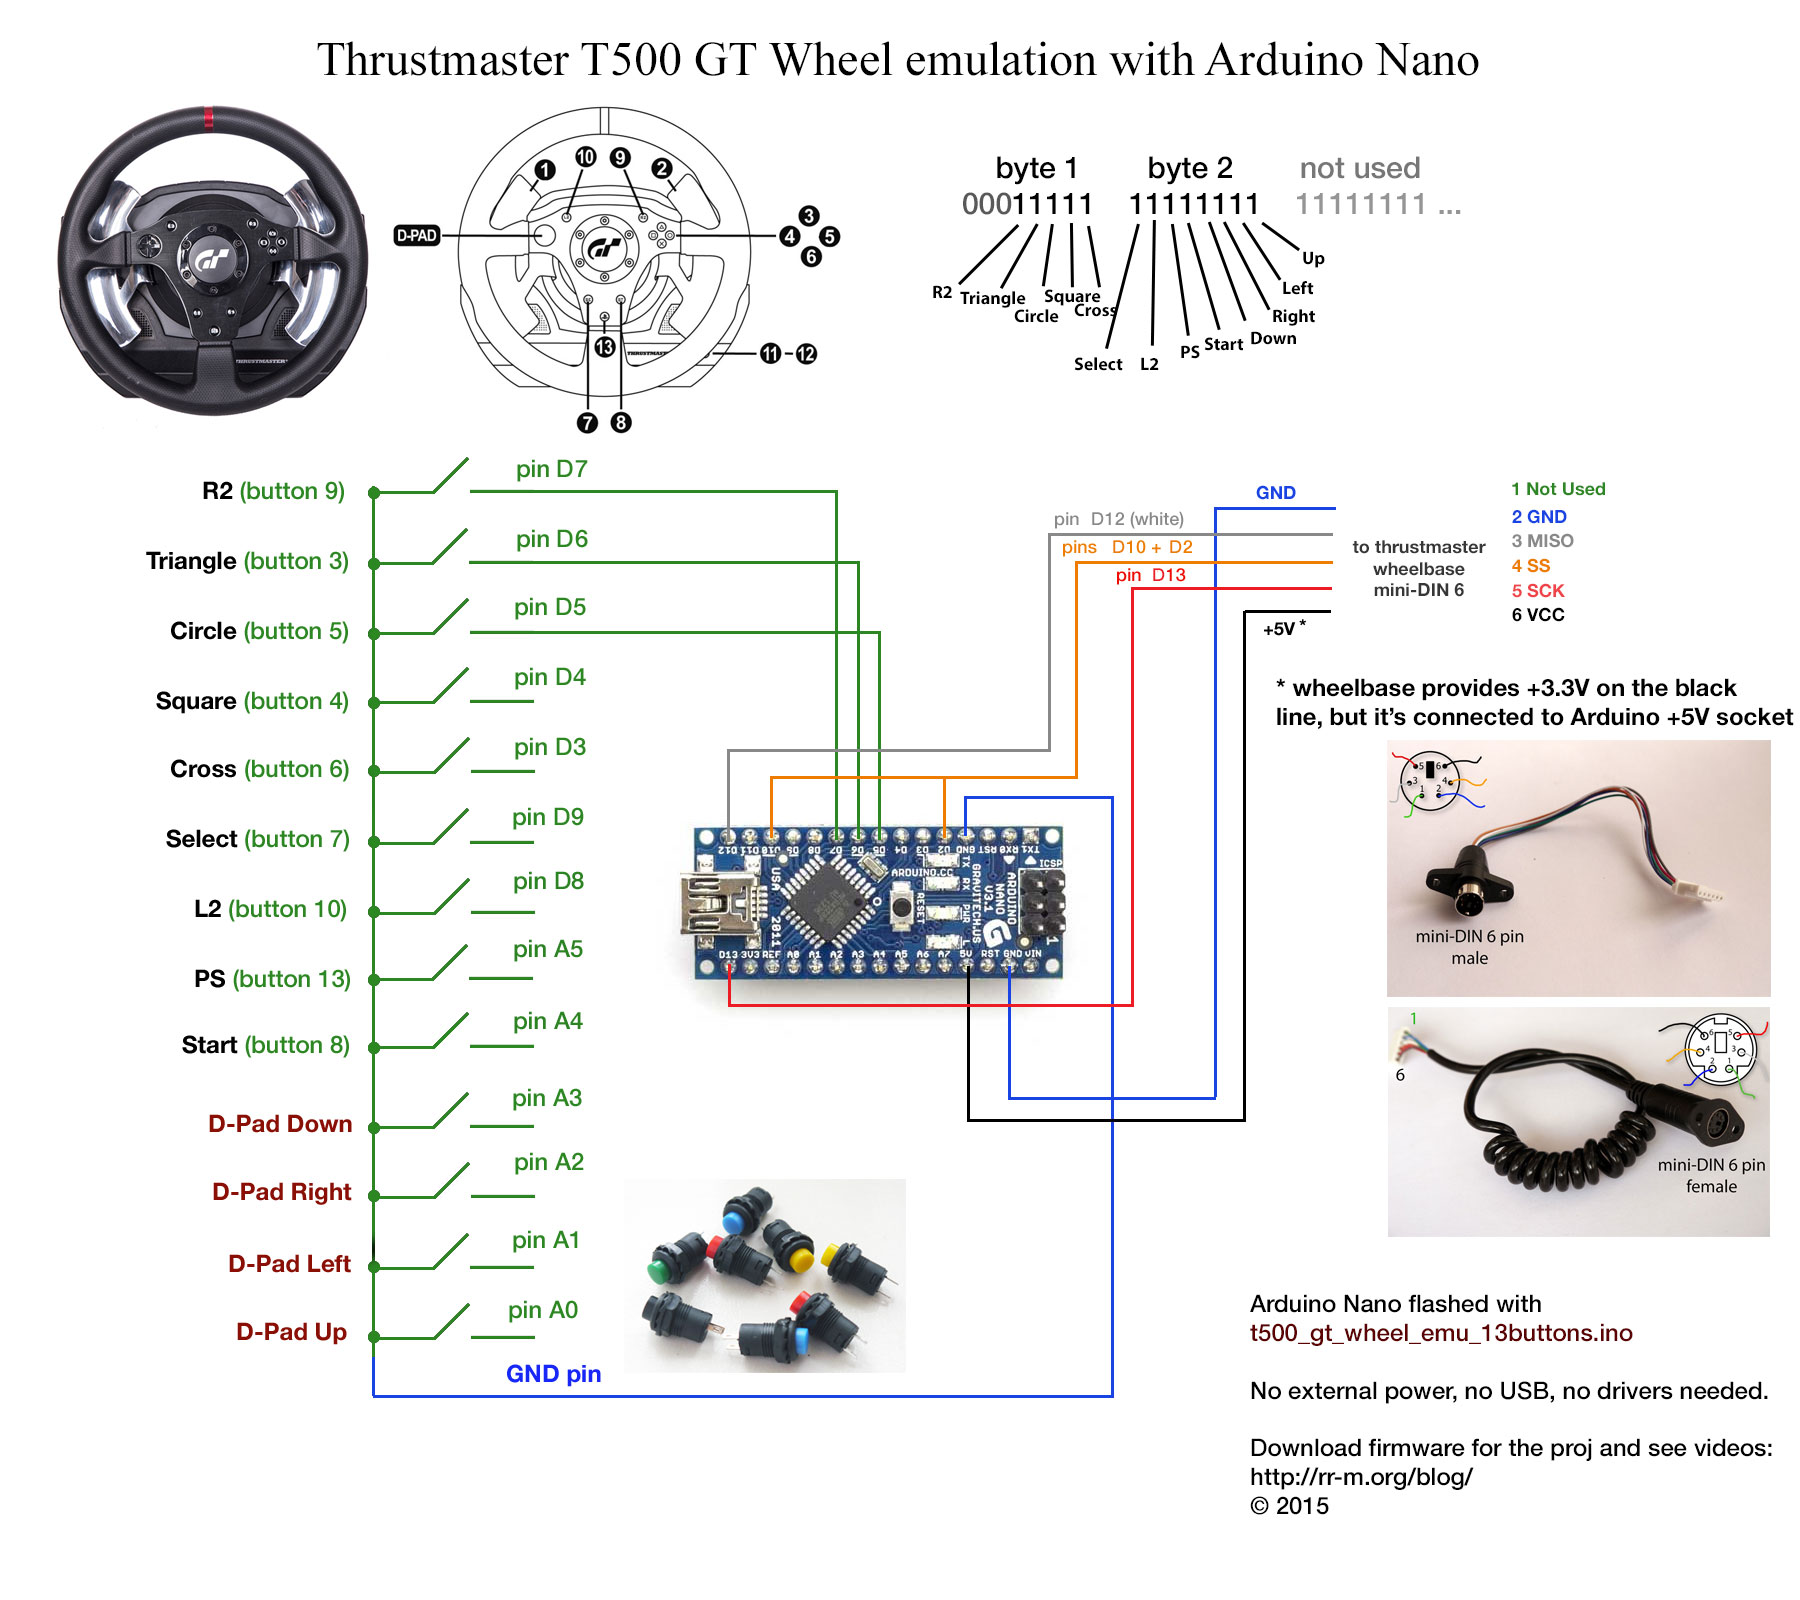 Gt 500 Wiring Diagram Another Blog About 2006 Ford Mustang Shaker Harness Emulating Thrustmaster T500 Wheel Electronics With